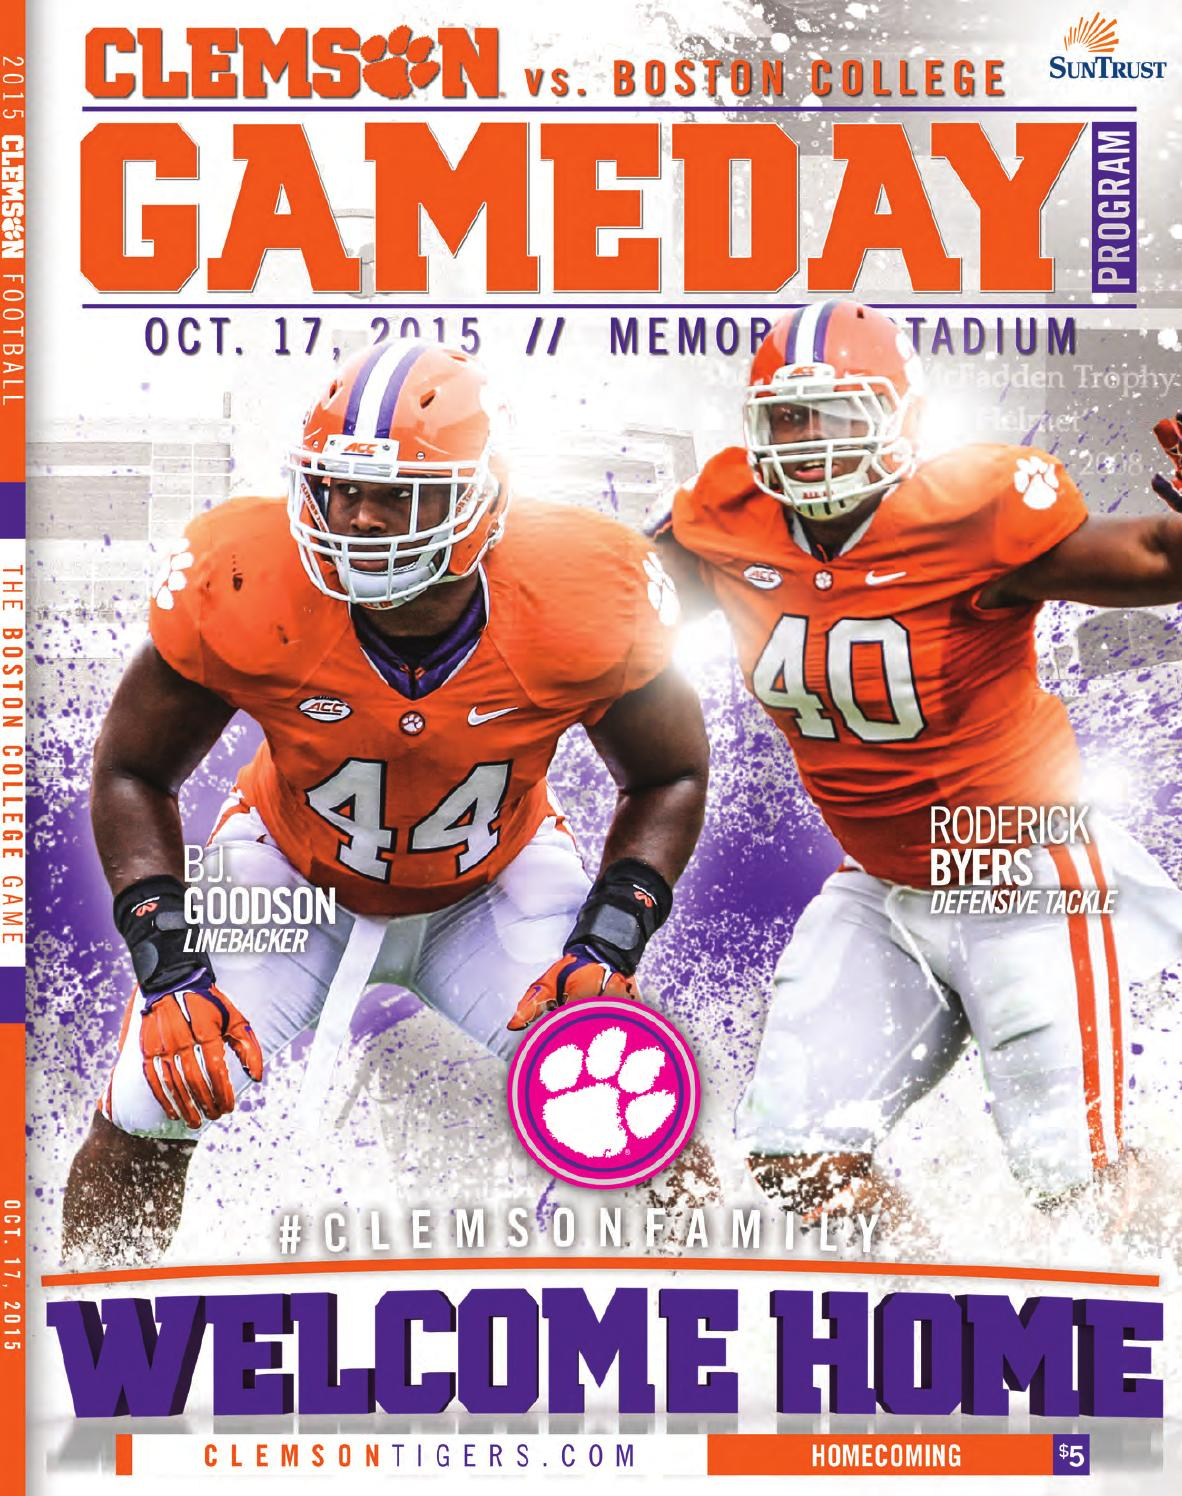 2015 Clemson vs. Boston College Football Gameday Program ...